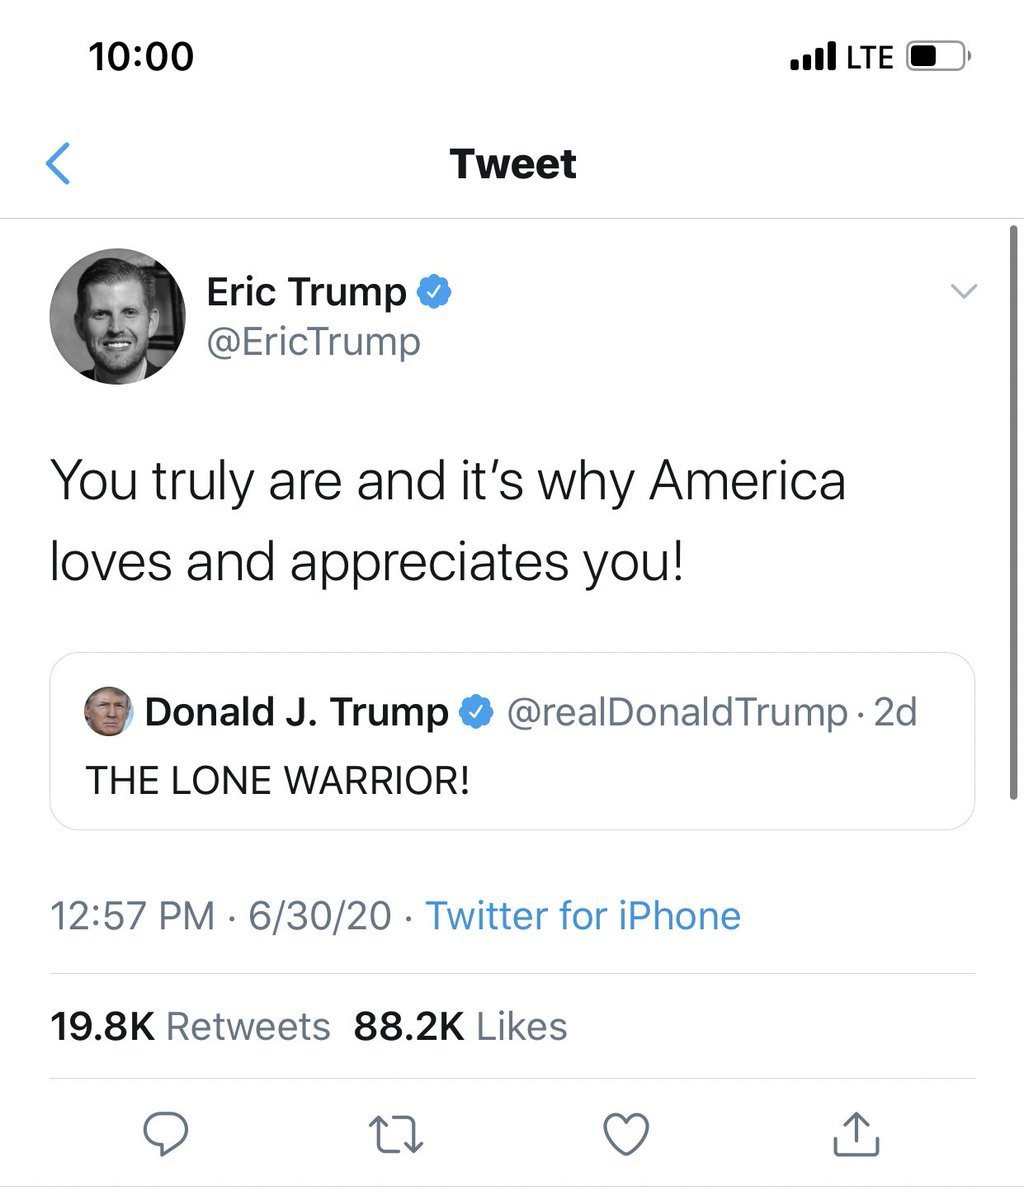 He still won't retweet you, Eric.